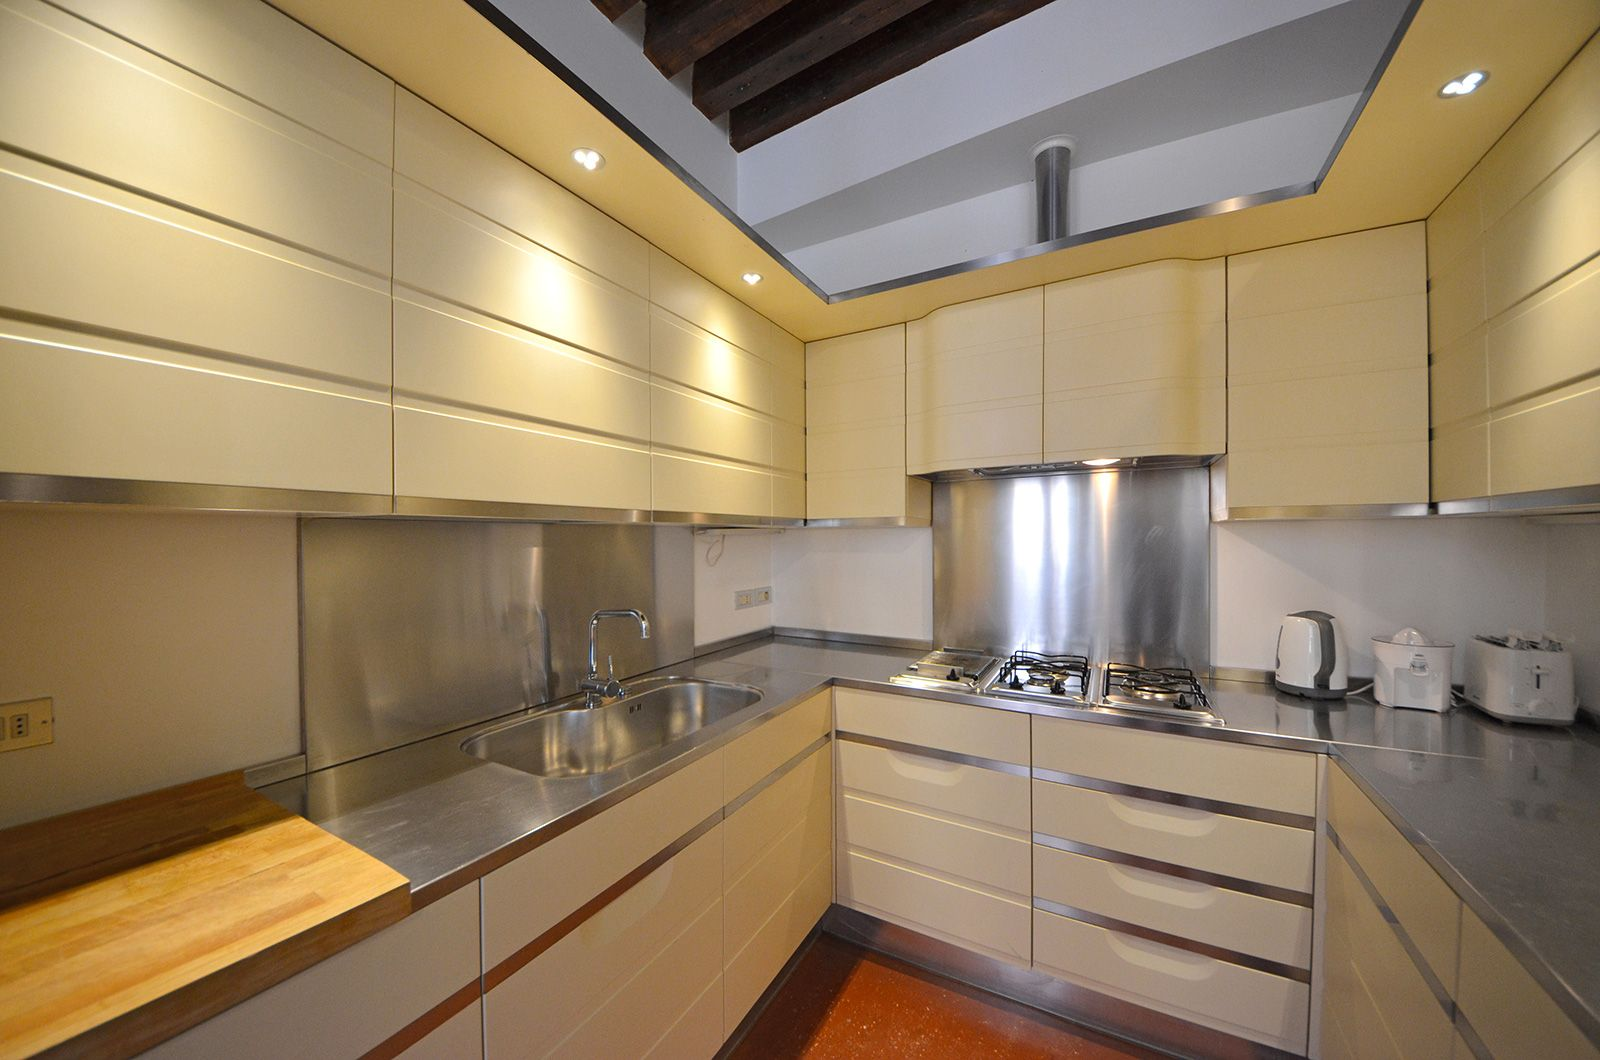 the kitchen is also very spacious and practical